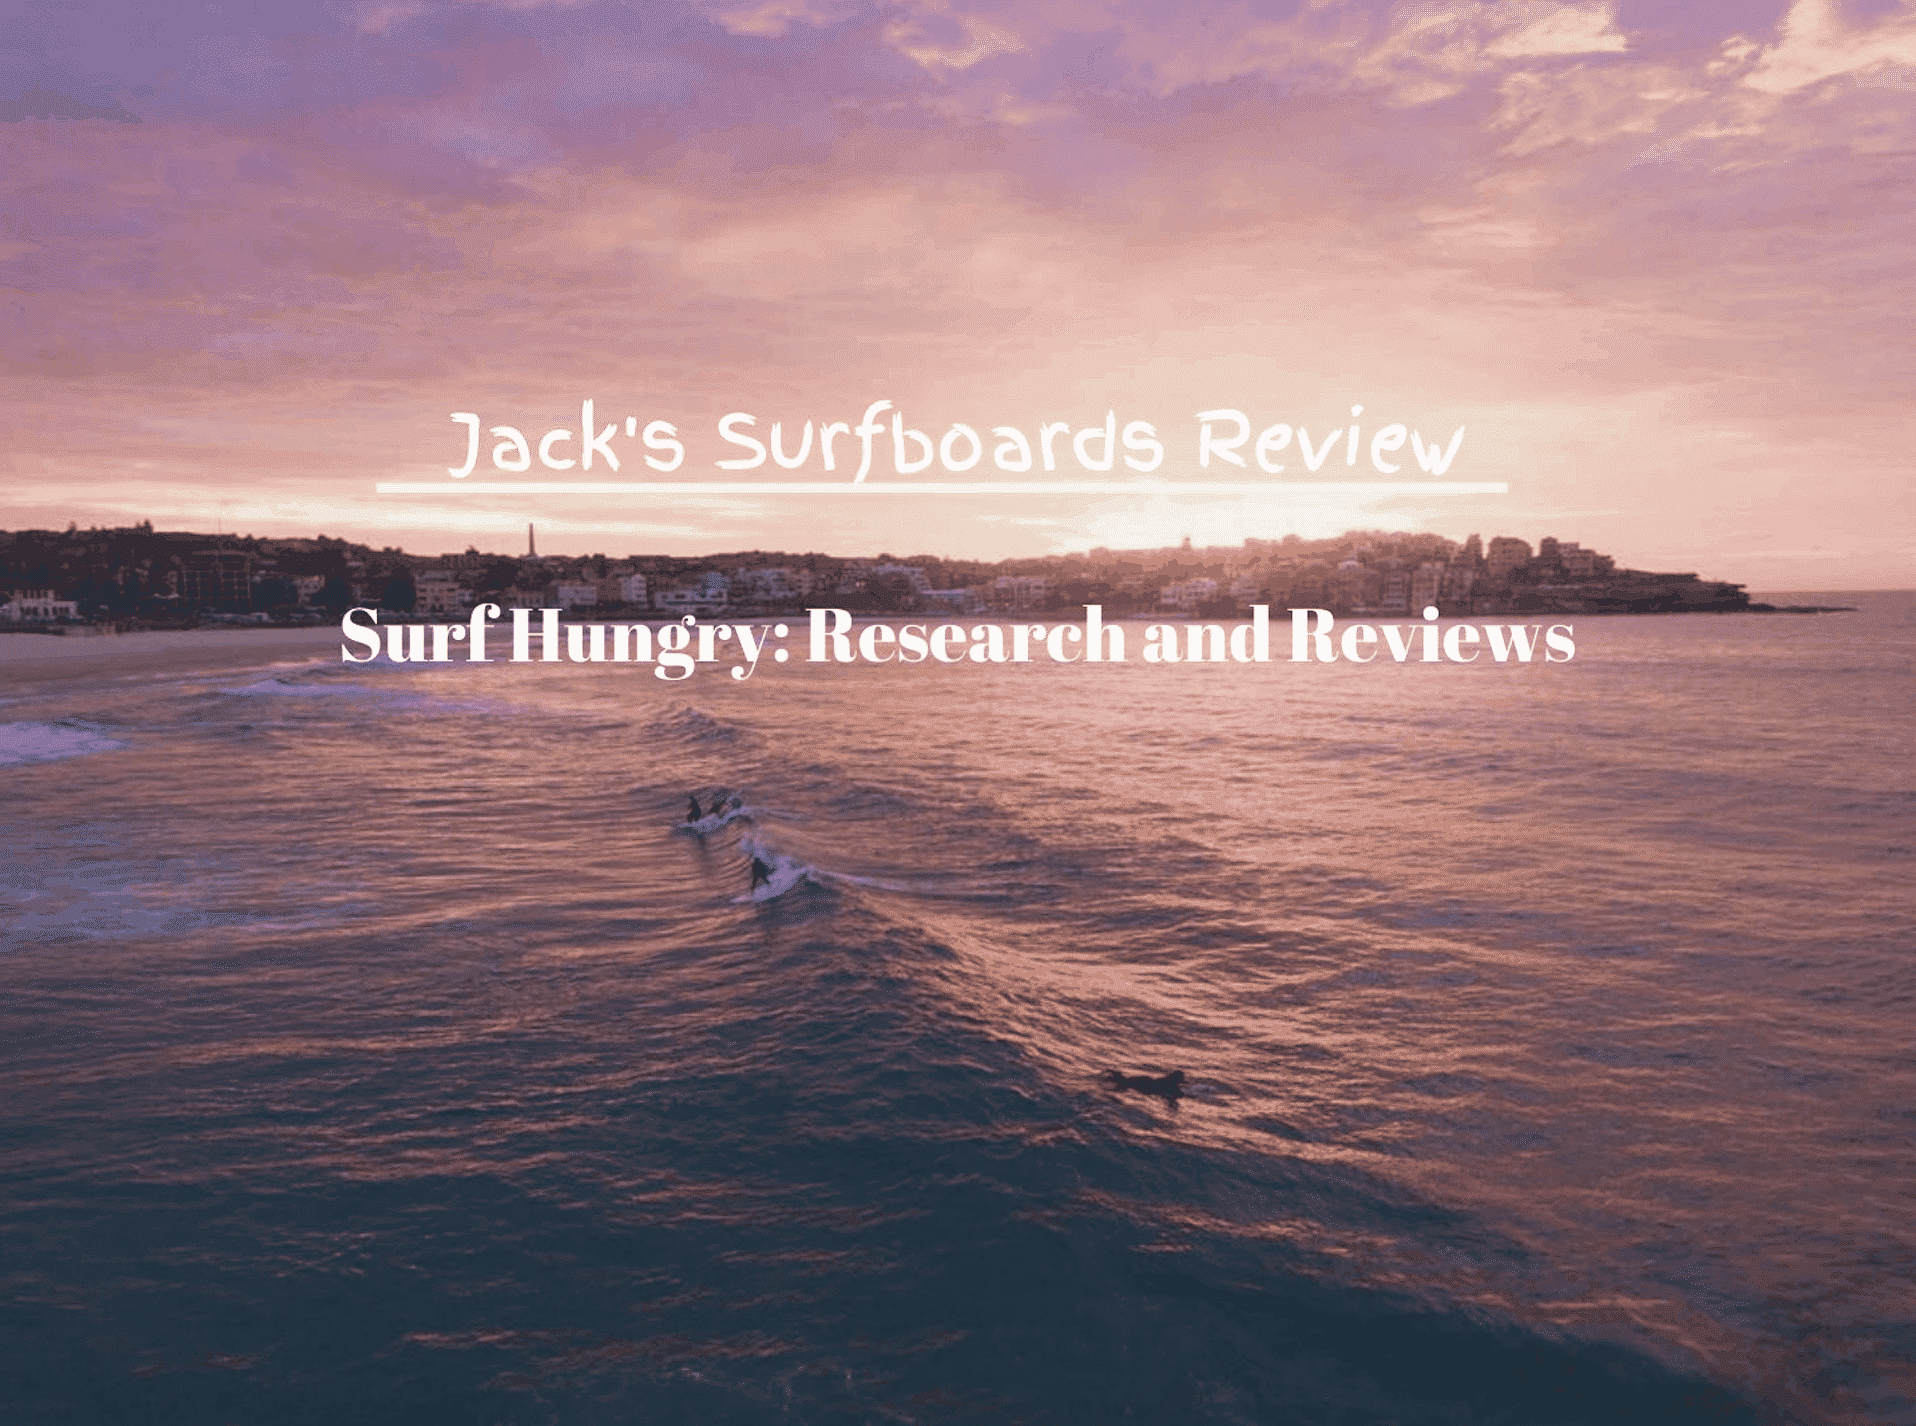 jack's surfboards review